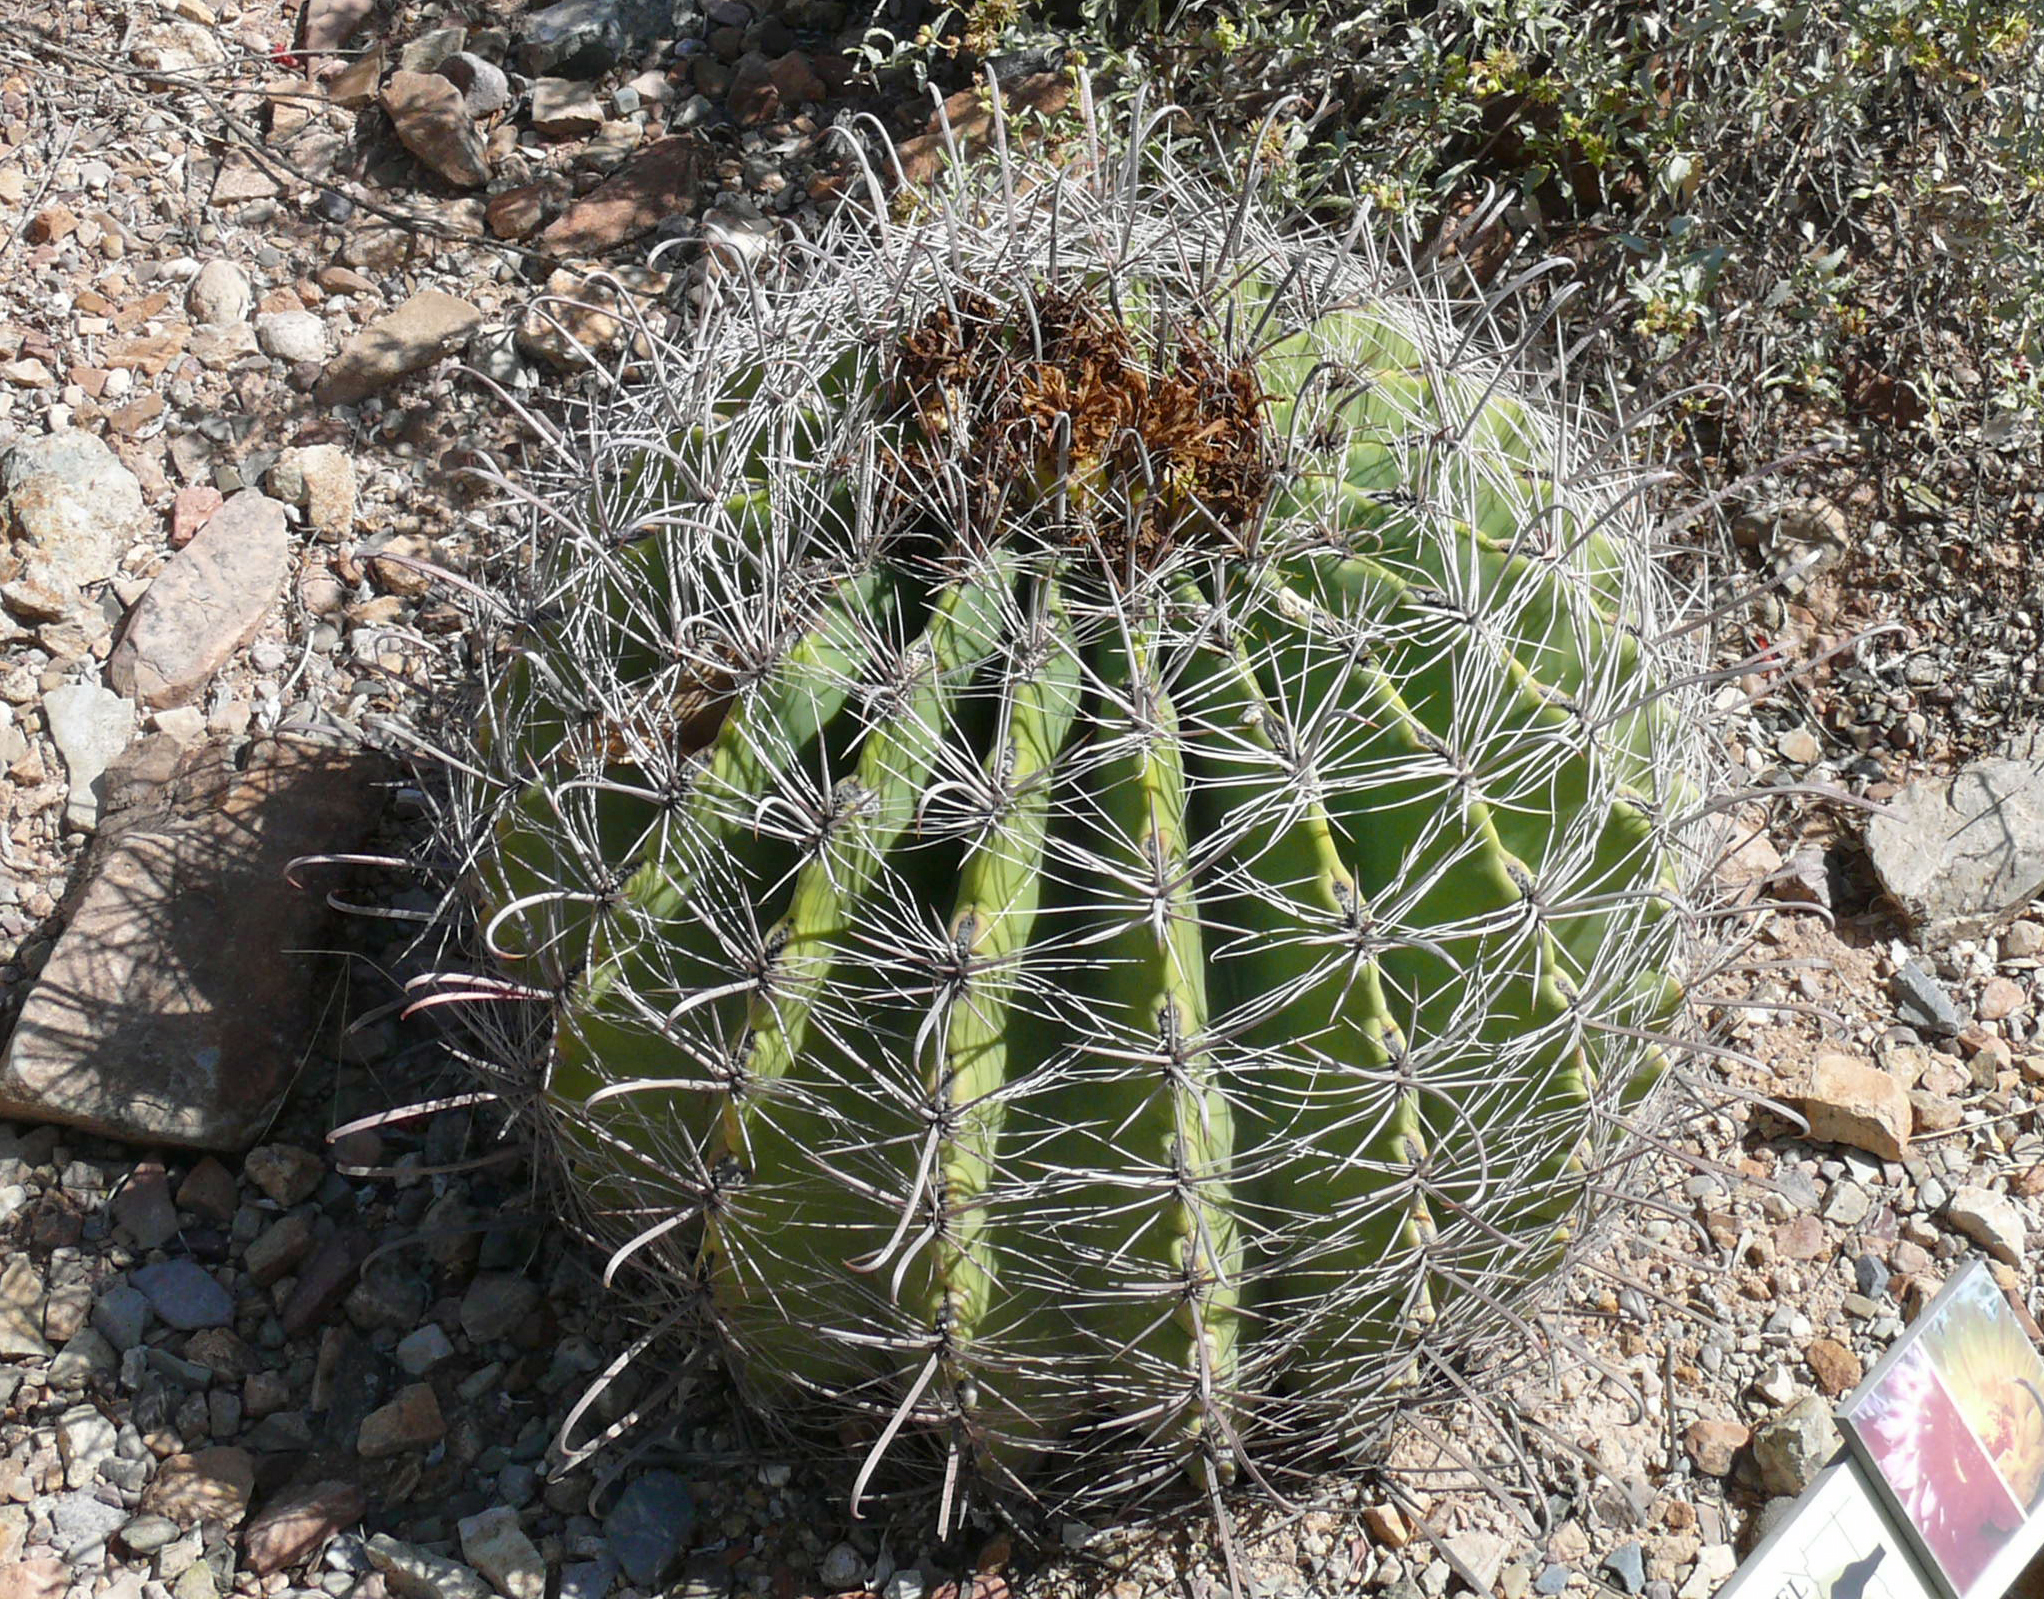 file fishook barrel ferocactus wikipedia